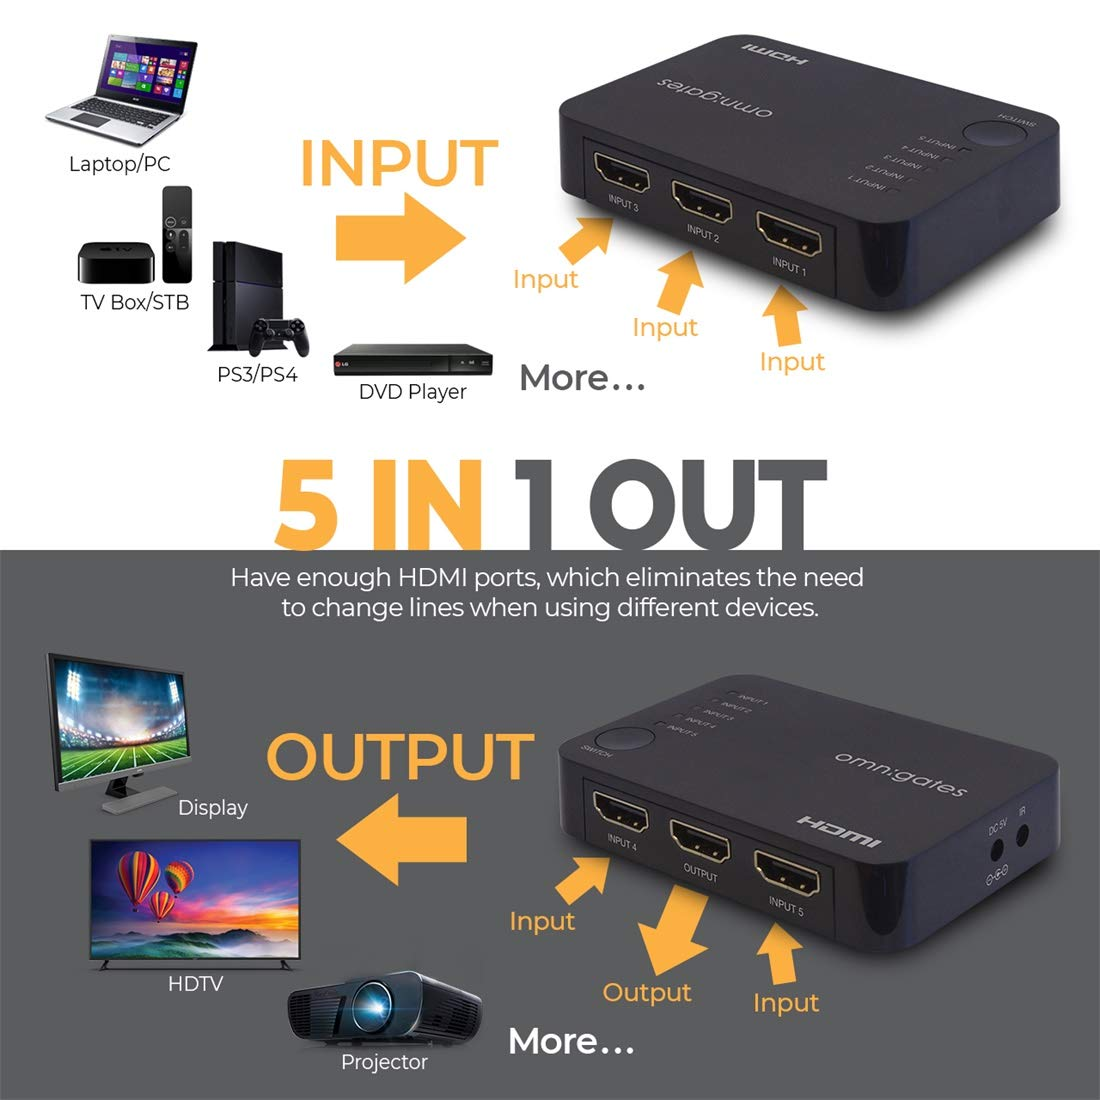 Omnigates HDMI Switch 5 Port 5 Ports HDMI Switch Box for Xbox PS4 TV Fire Stick Roku Blu-Ray Player 4K HDMI Switcher 5x1 with IR Remote,Auto HDMI Selector Switch Supports HD 1080P 4Kx2K 3D HDCP 1.4